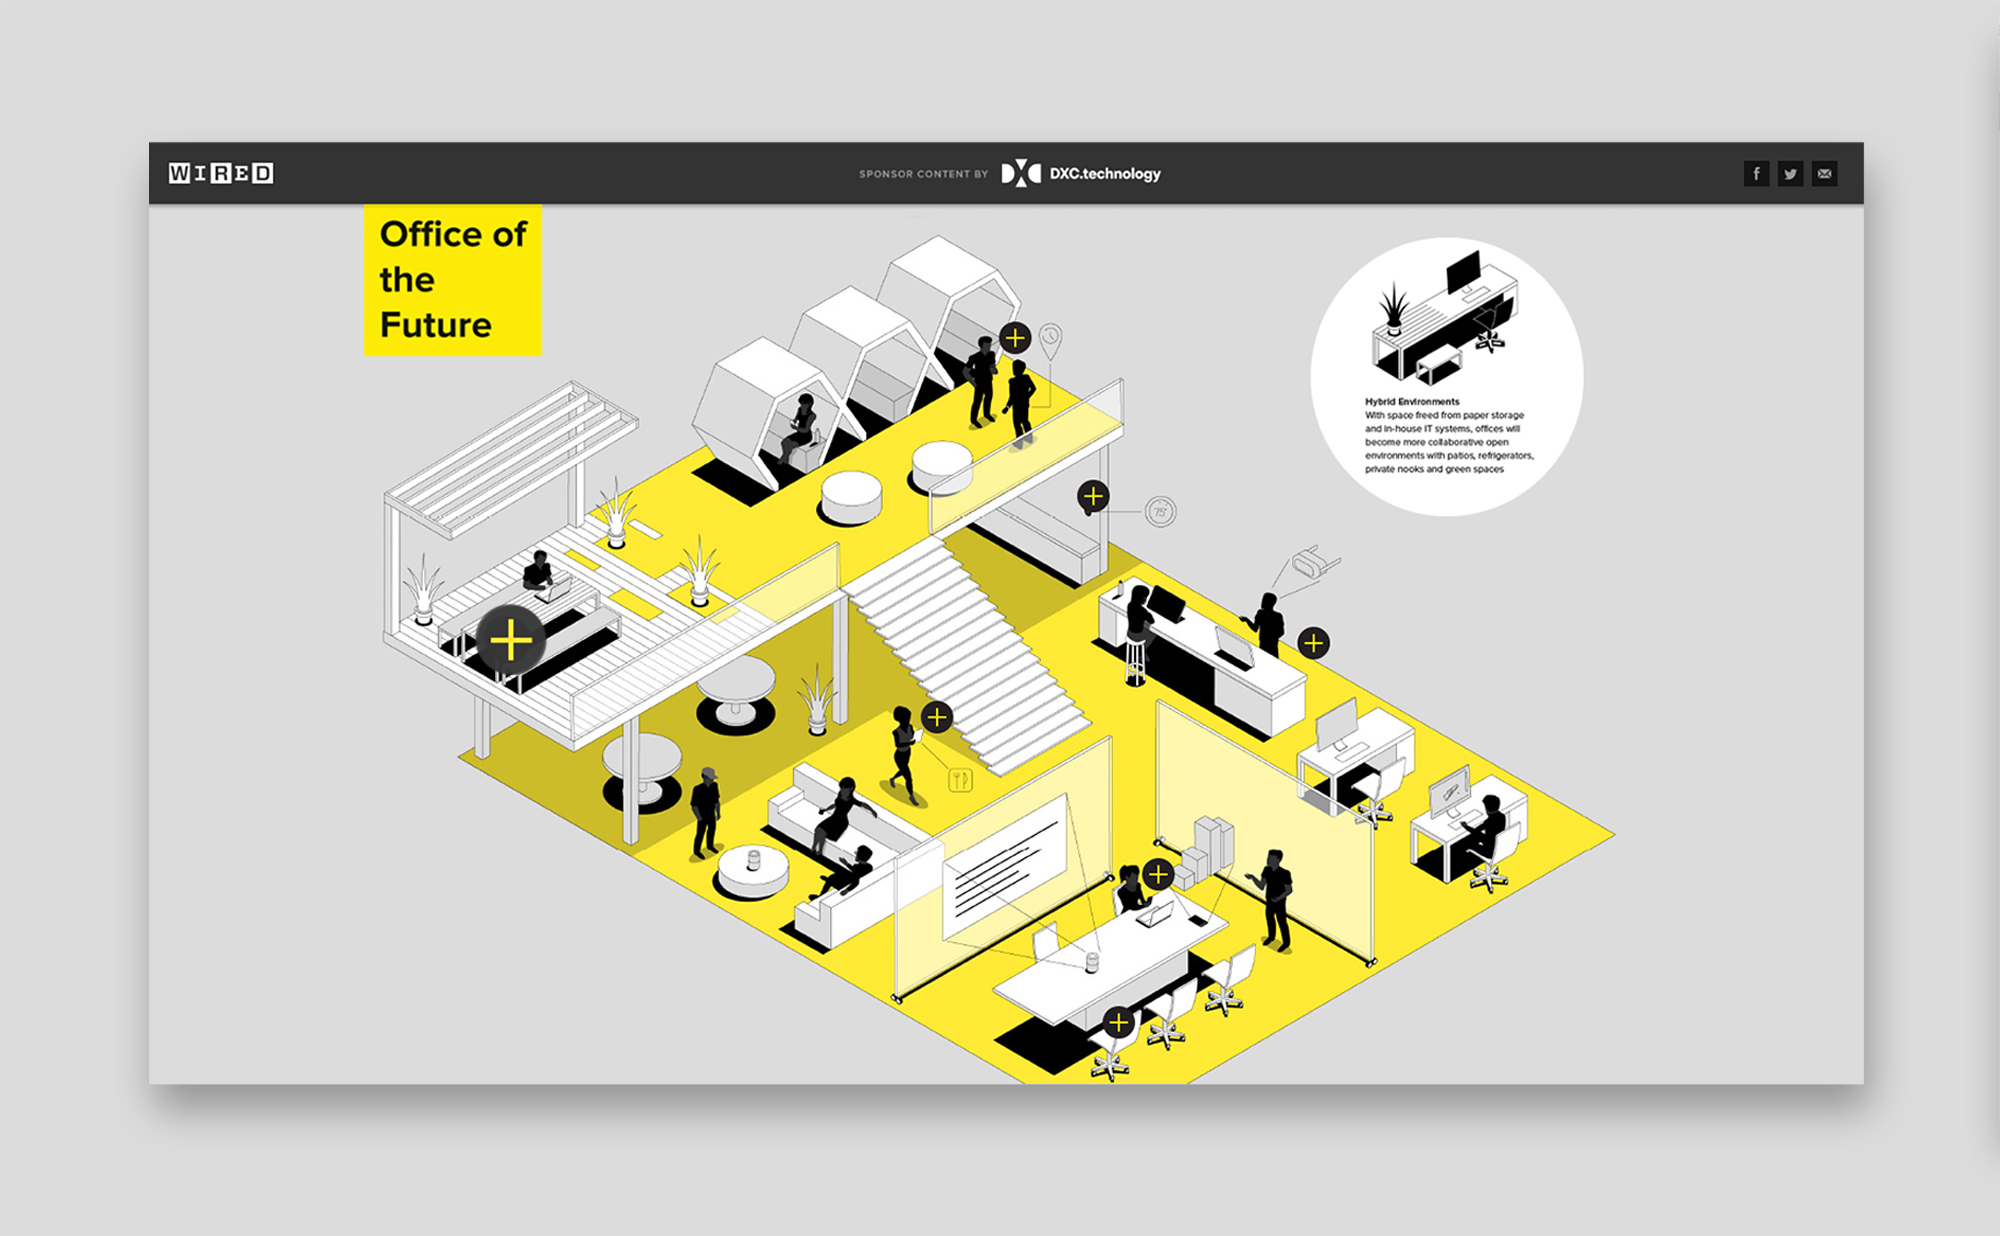 Office of the future illustration design for Wired and DXC